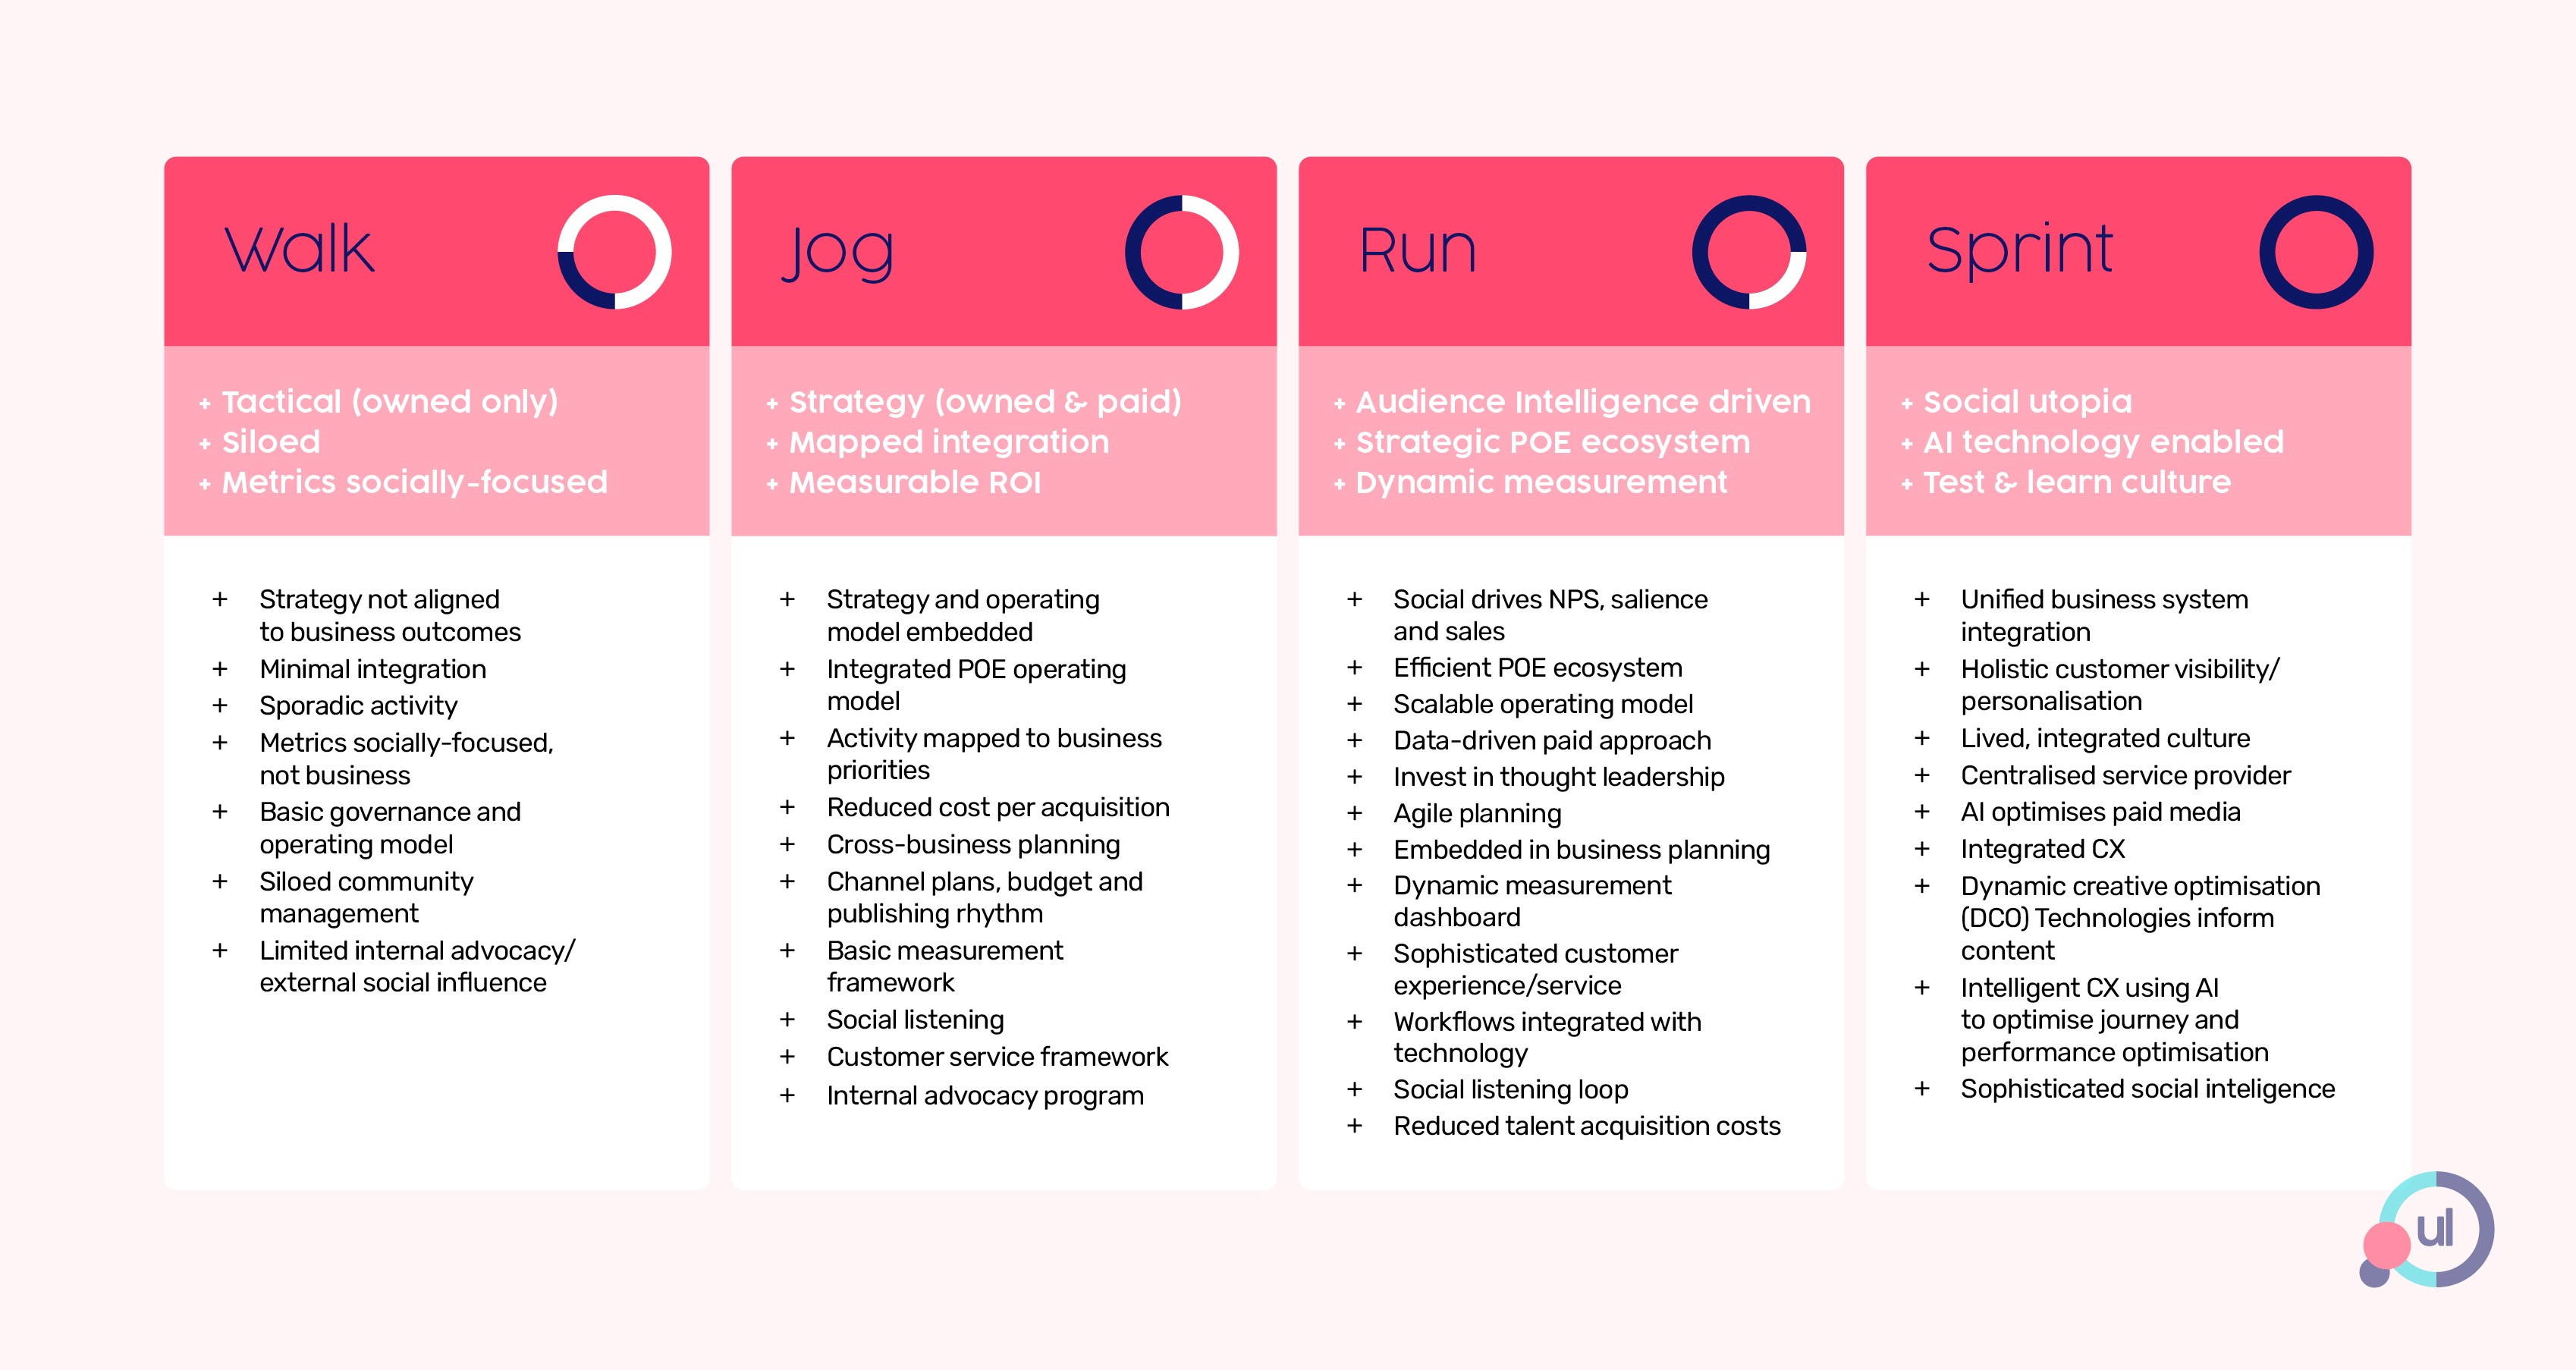 Chart depicting walk, jog, run, sprint — the four phase roadmap to social domination